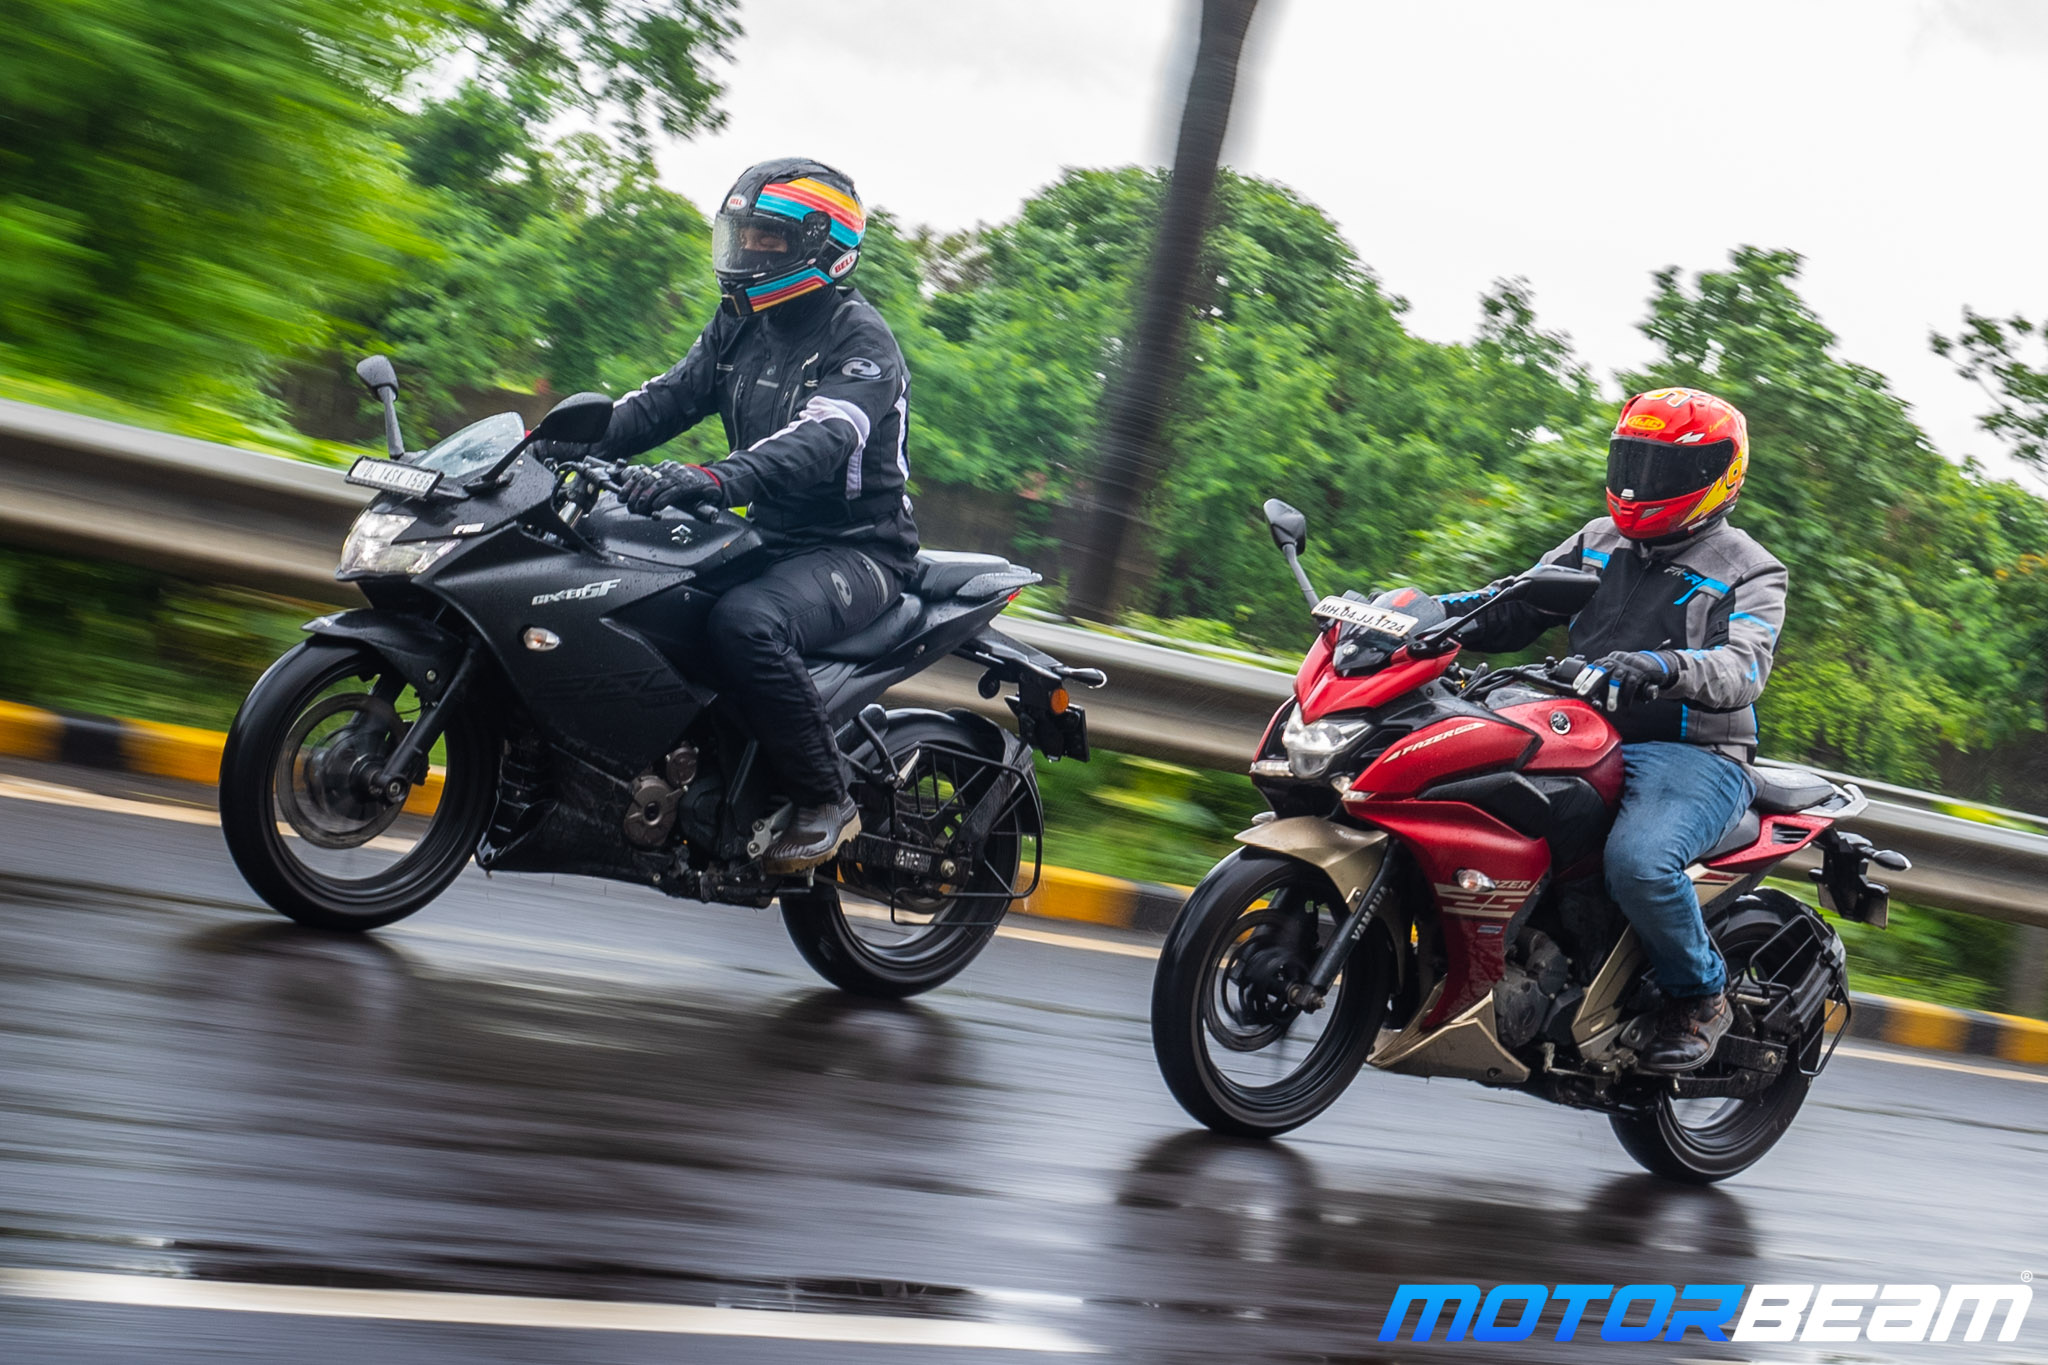 Suzuki Gixxer 250 vs Yamaha Fazer 250 Shootout Video